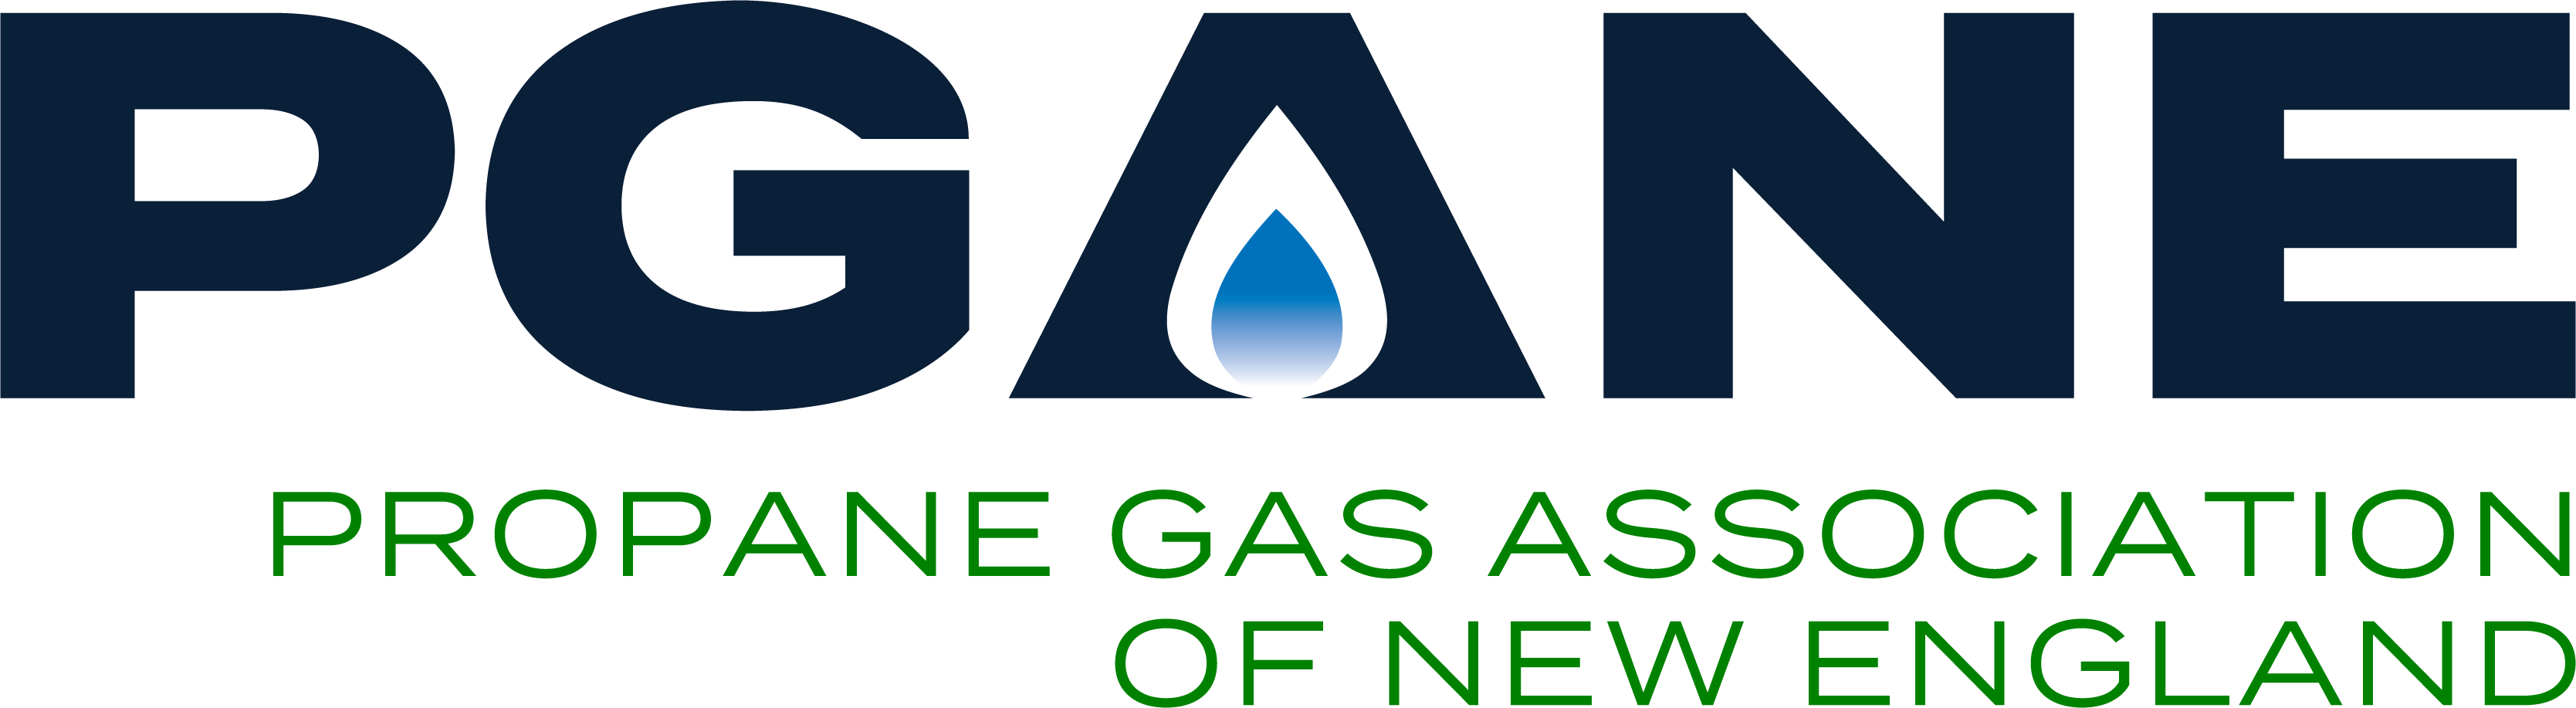 Propane Gas Association of NewEngland | Propane Gas Association of